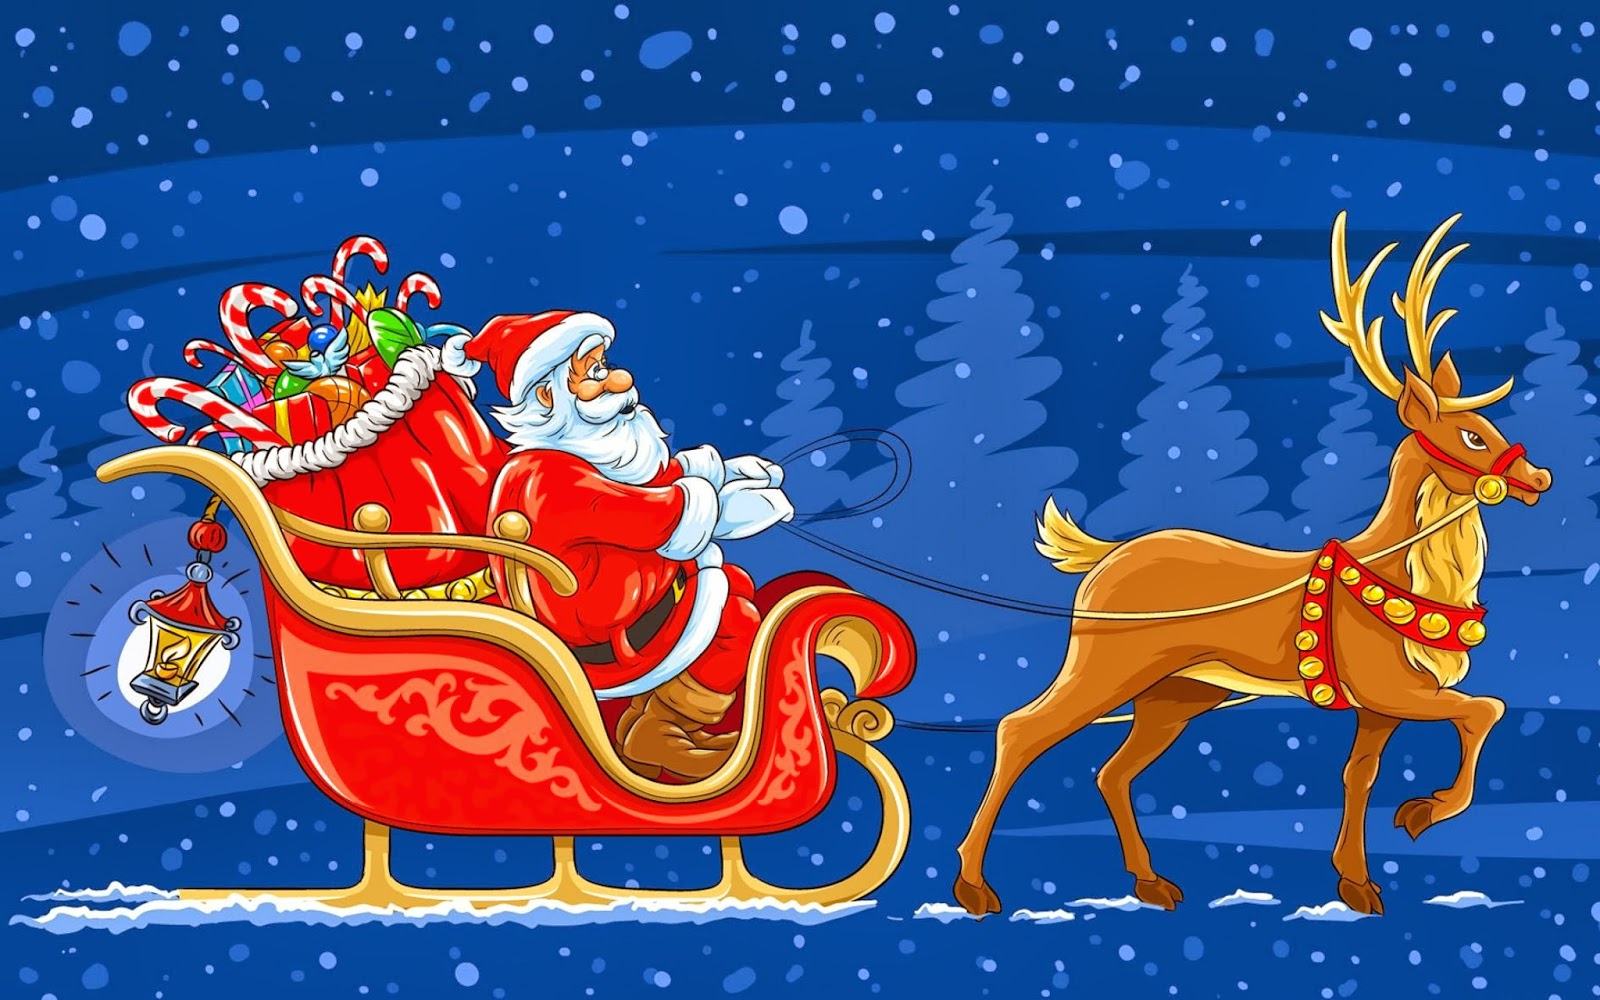 Best santa images top santa clause wallpapers santa barbara santa santa clause santa barbara santa cruz santa banta santa sleigh voltagebd Image collections